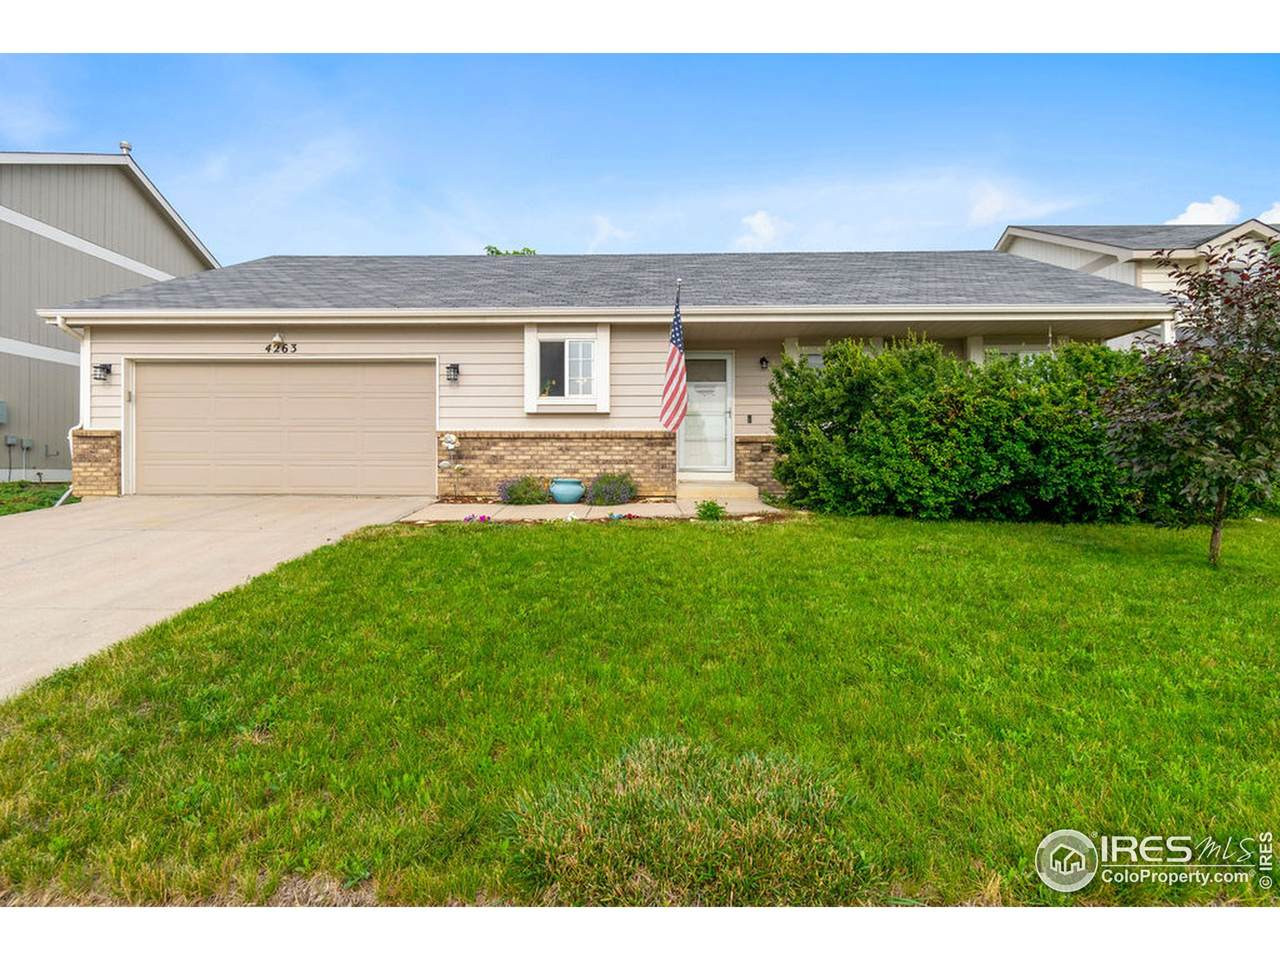 4263 Florence Dr - Photo 1